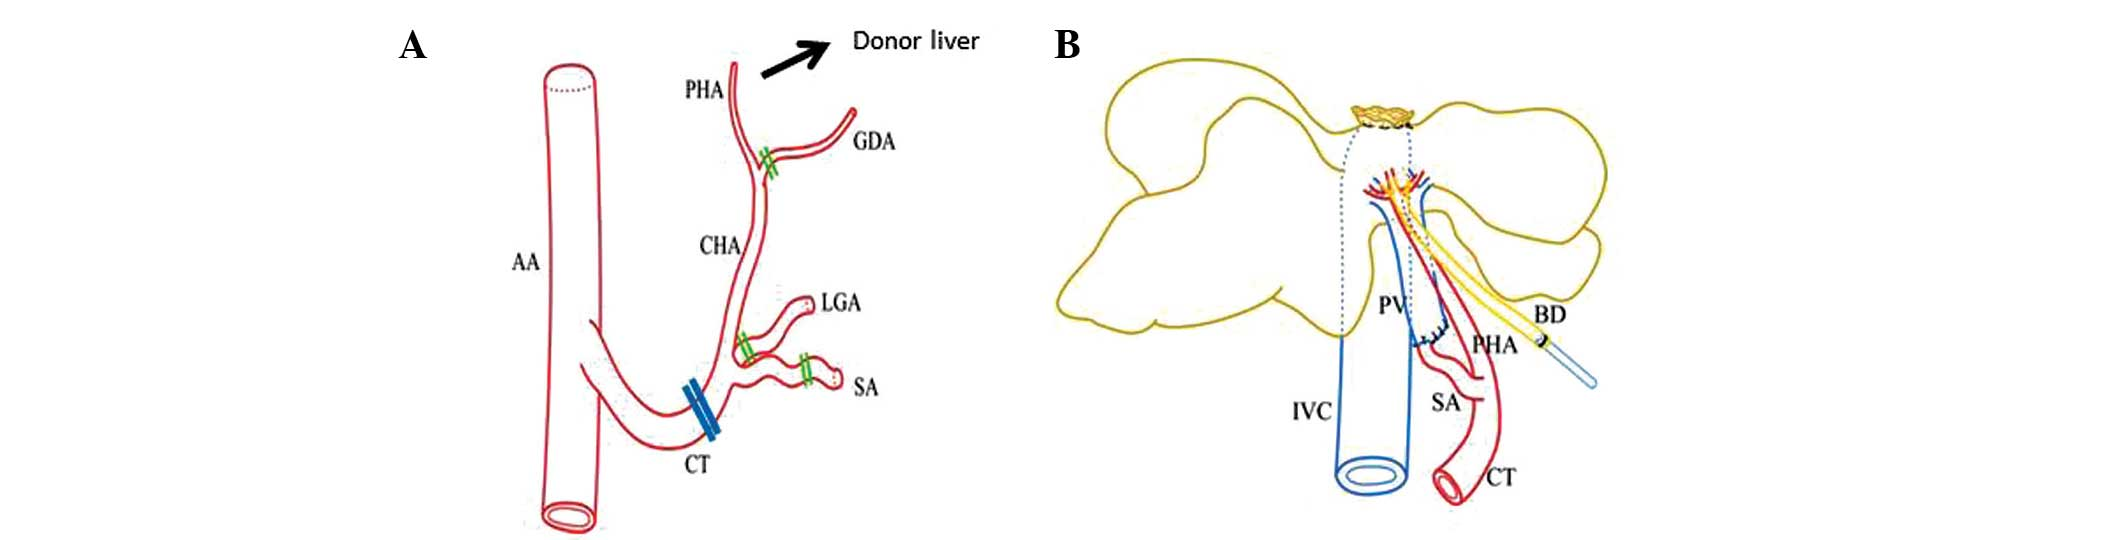 A New Rat Model Of Auxiliary Partial Heterotopic Liver